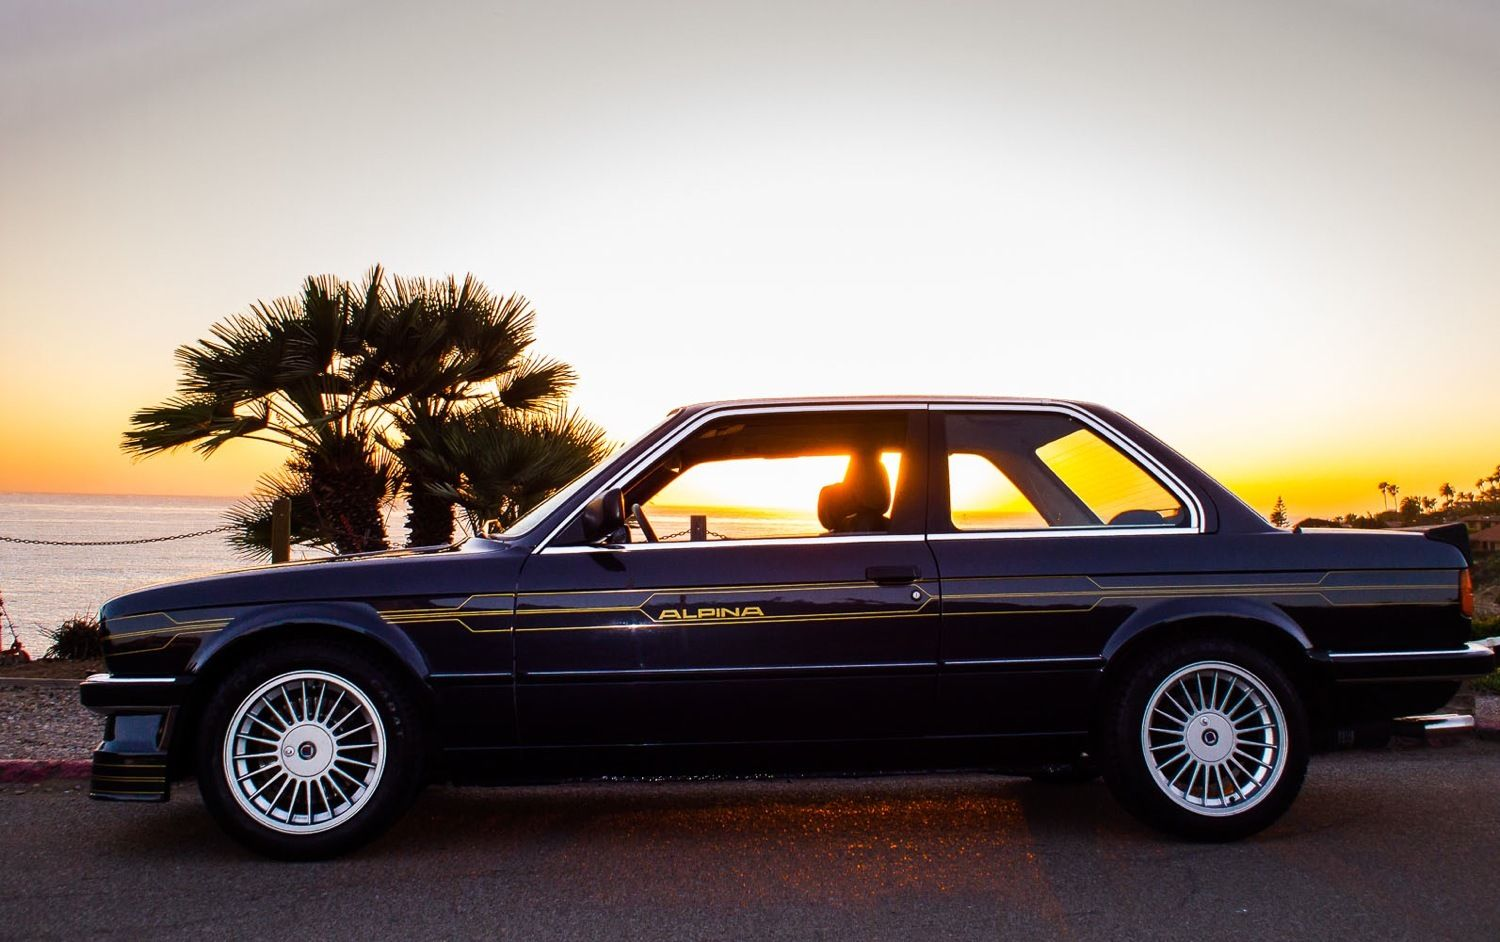 Bmw X Drive >> One of only 218 Alpina B6 3.5 Cars Ever Made Can Be Yours for $62,000 - autoevolution